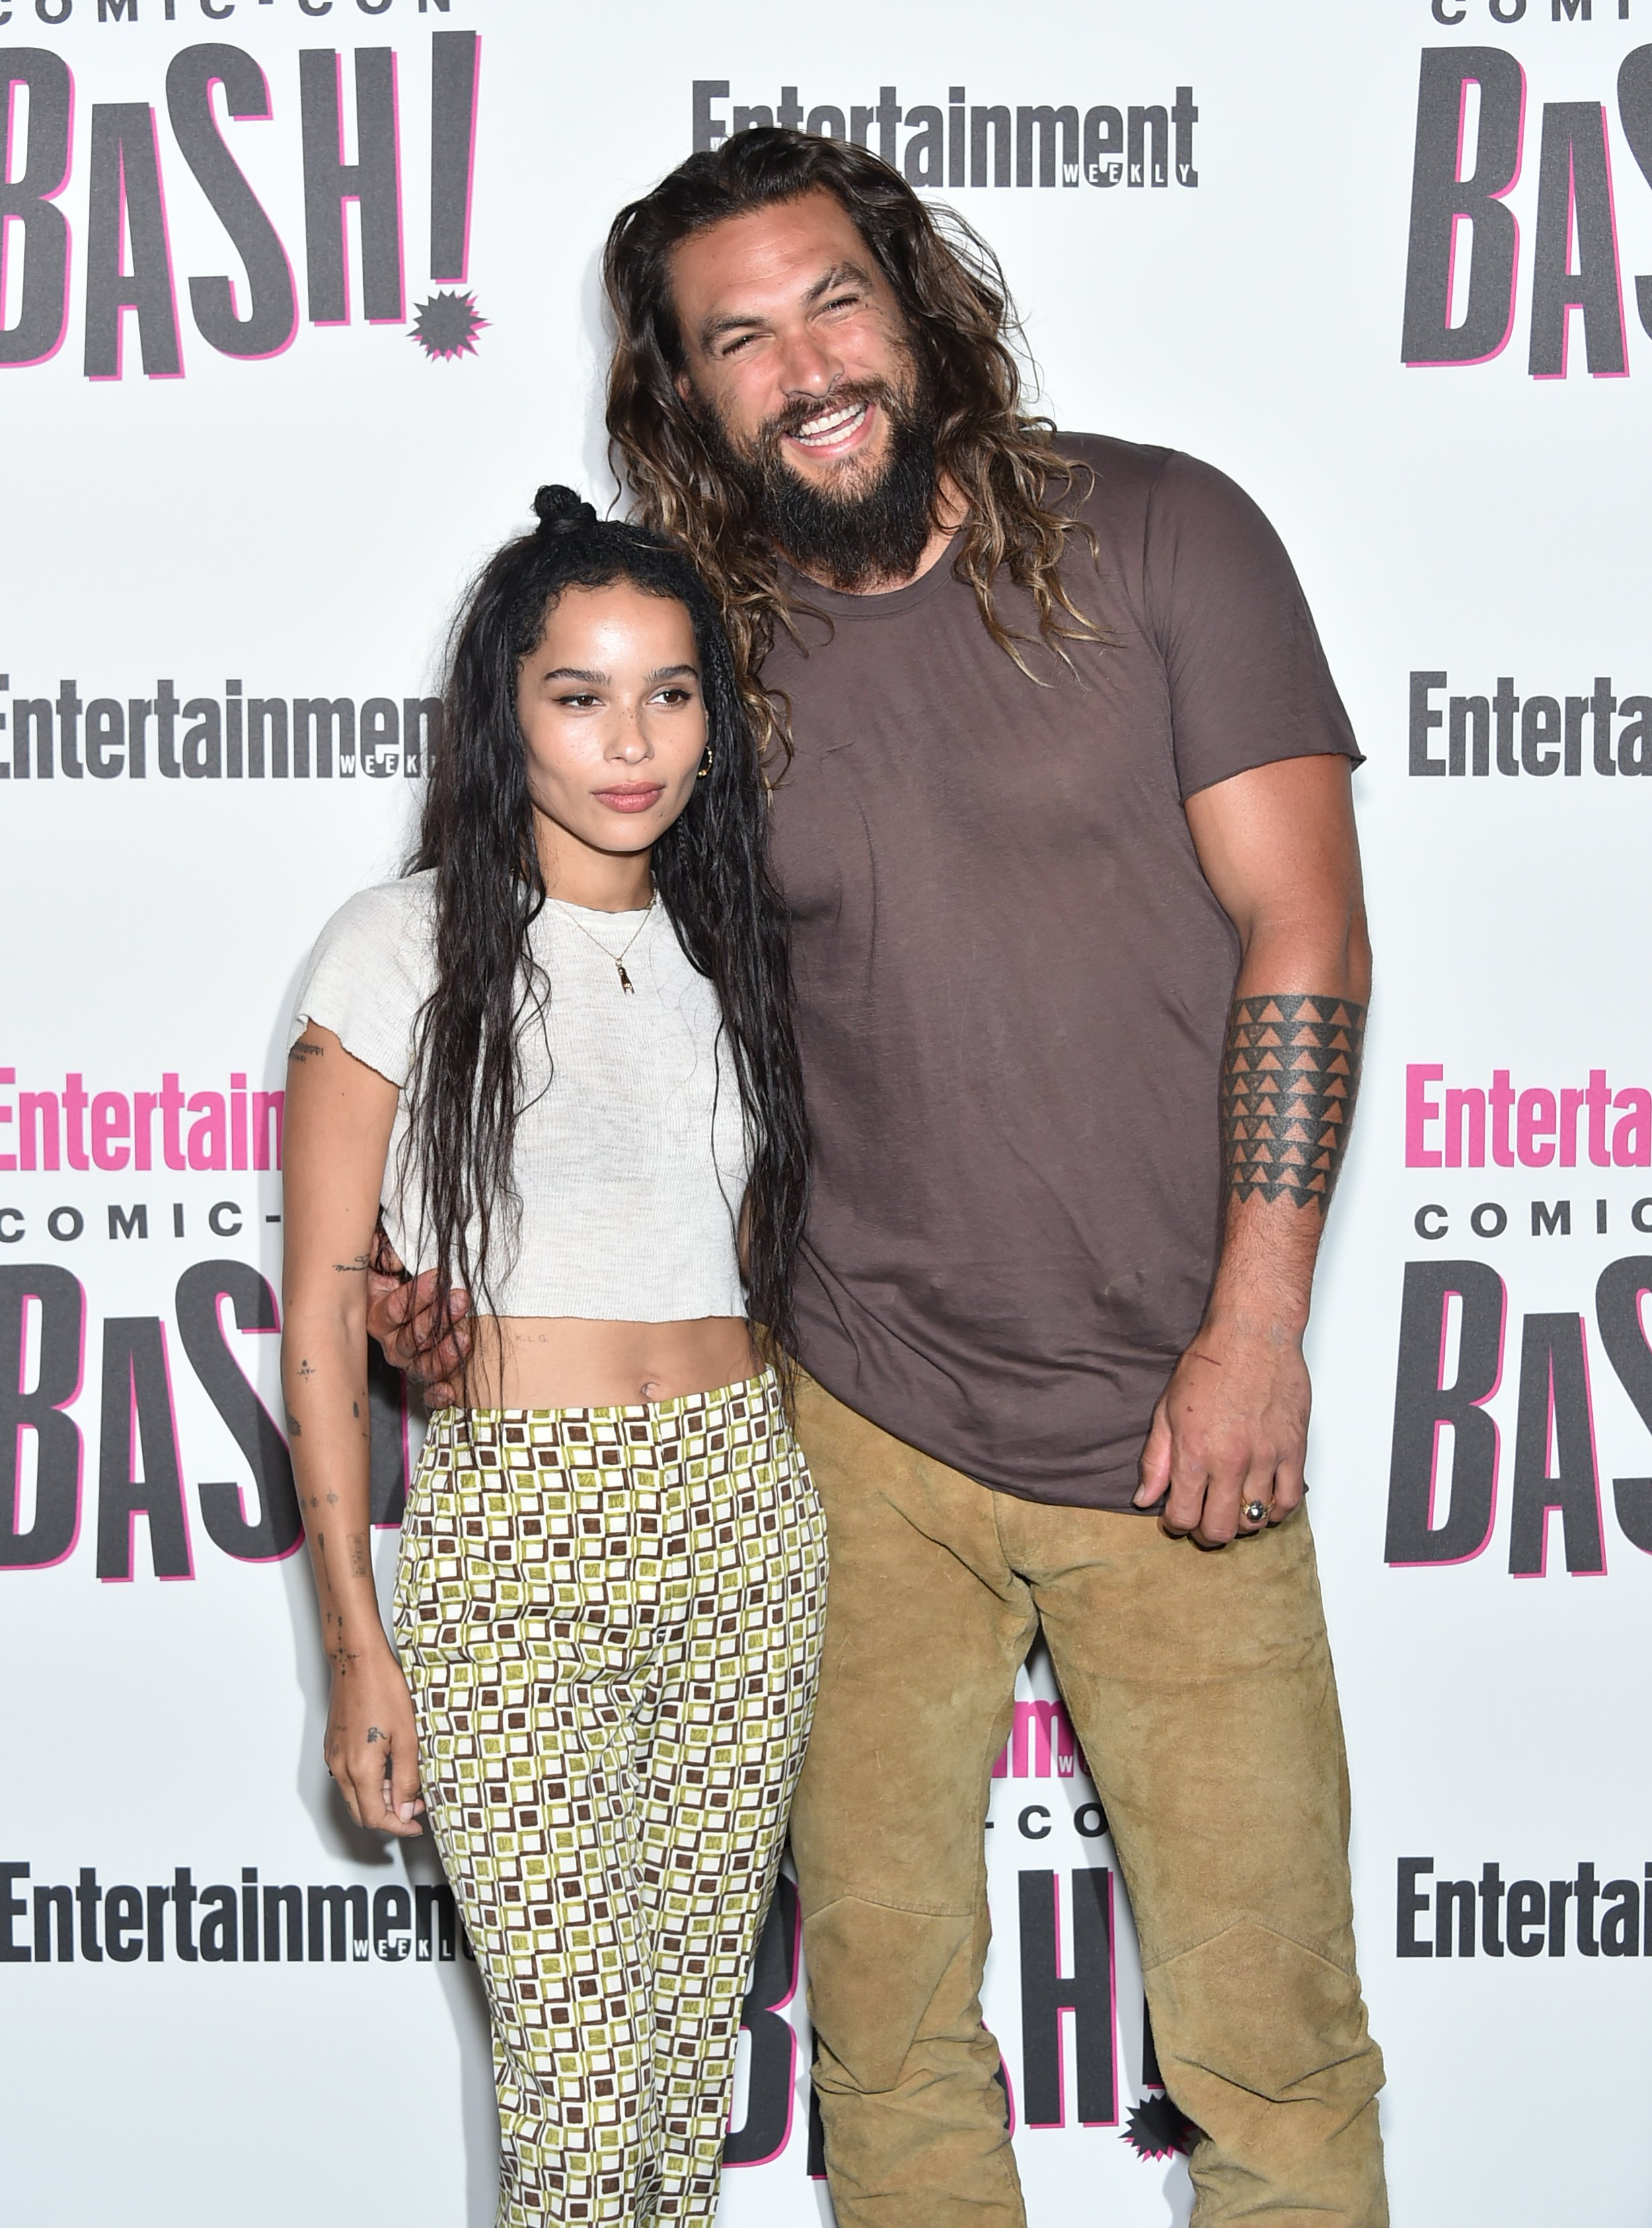 Zoe Kravitz and Jason Momoa attends Entertainment Weekly's Comic-Con Bash | Photo: Getty Images